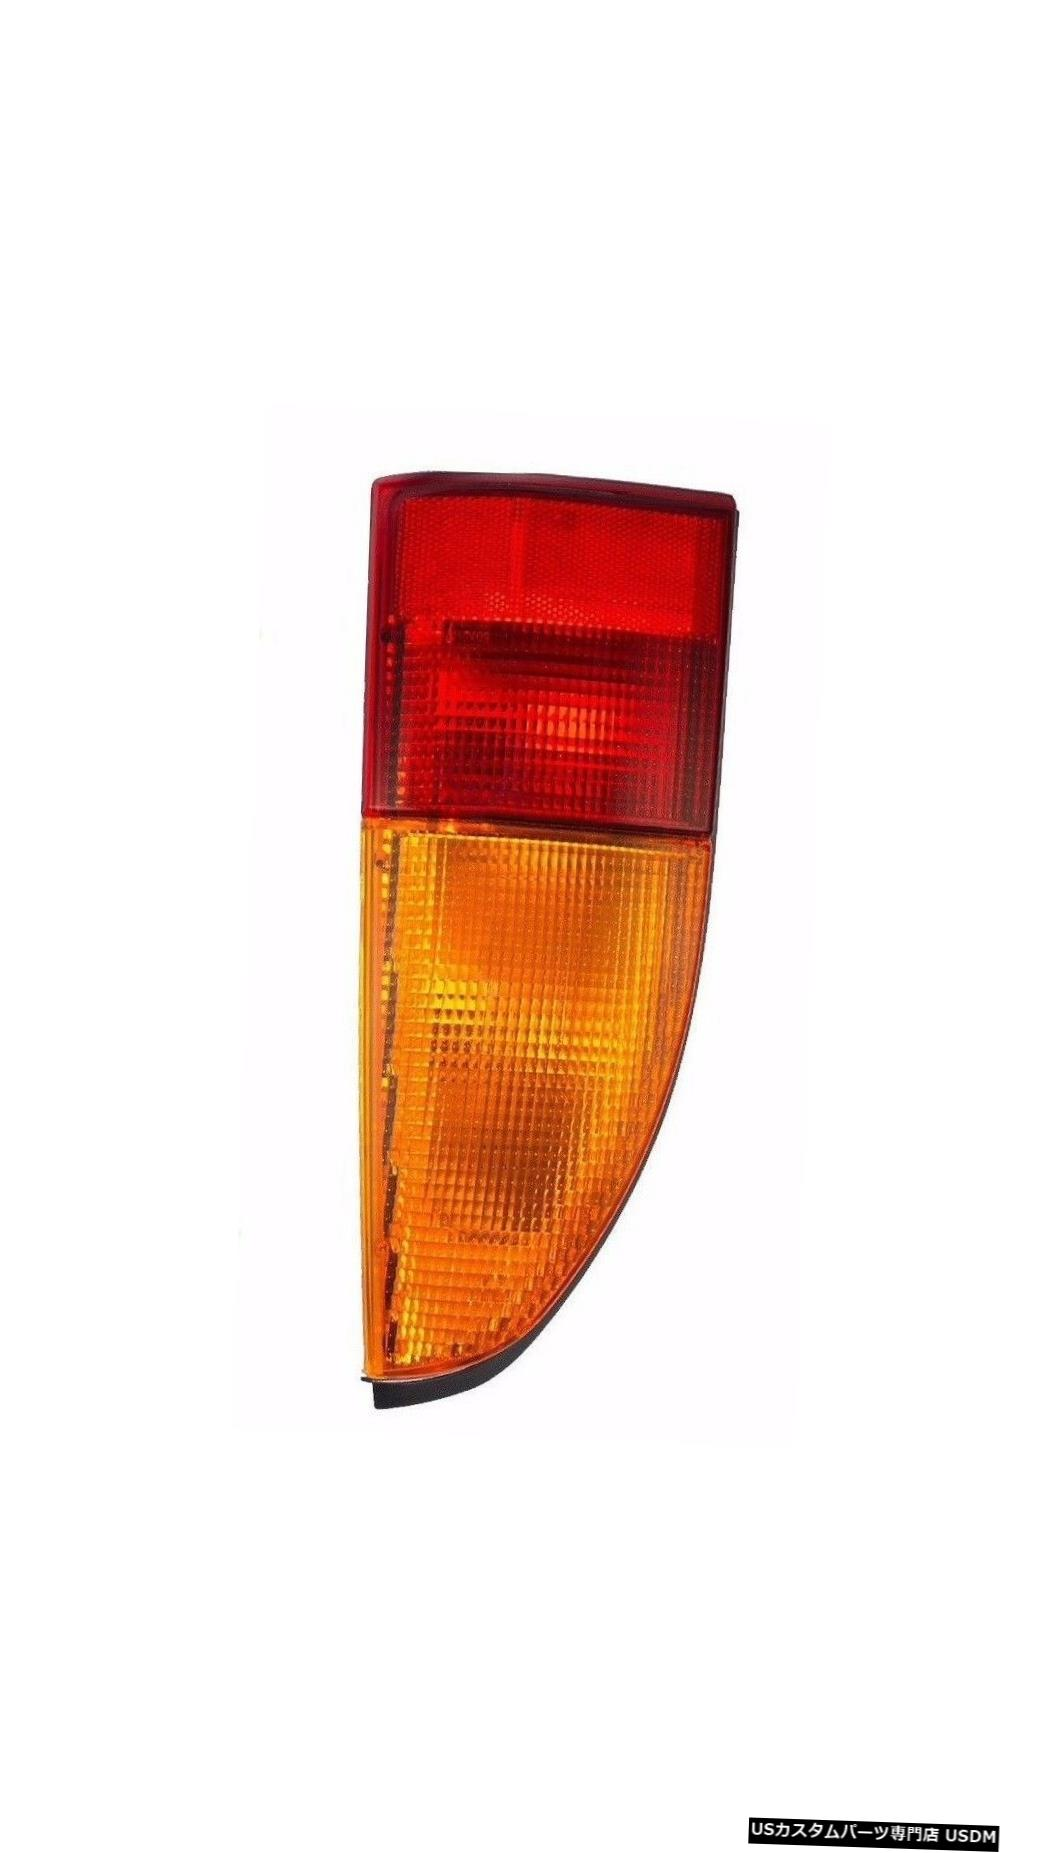 Tail light FLEETWOOD DISCOVERY 2009 2010 2011左下ドライバーテールランプテールライトRV FLEETWOOD DISCOVERY 2009 2010 2011 LOWER LEFT DRIVER TAIL LAMP TAILLIGHT RV